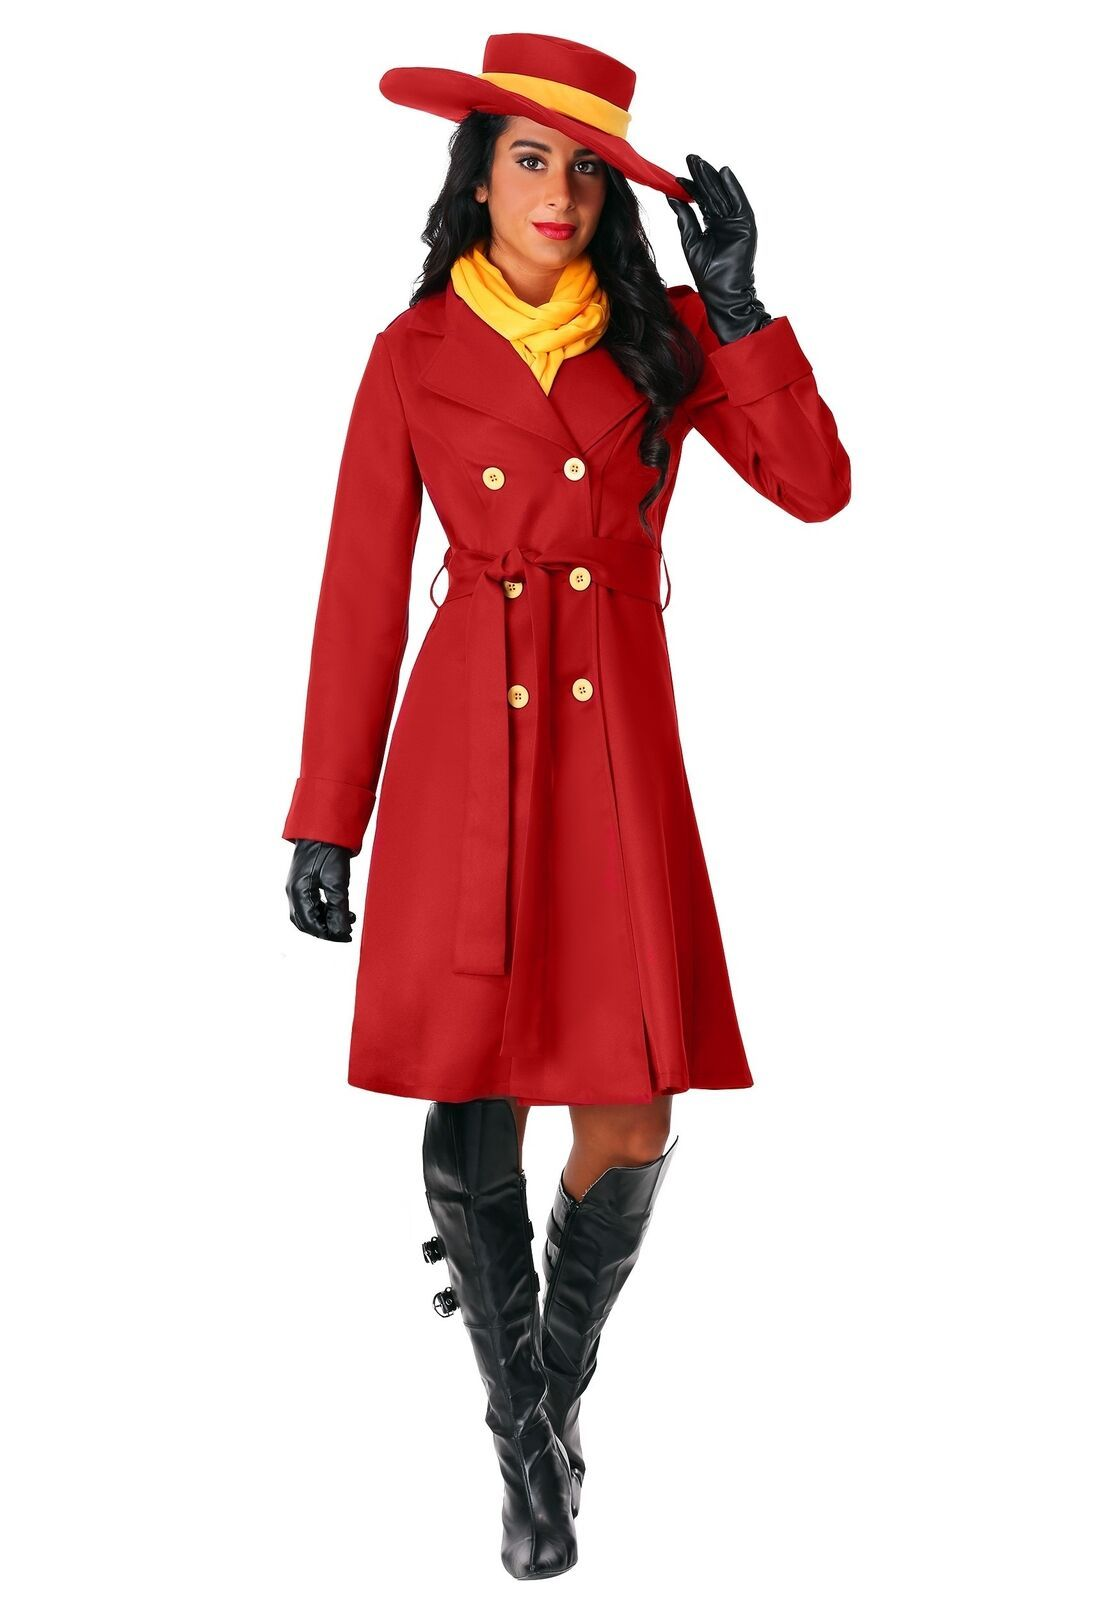 Details about Women's Carmen Sandiego Costume em 2020 Look